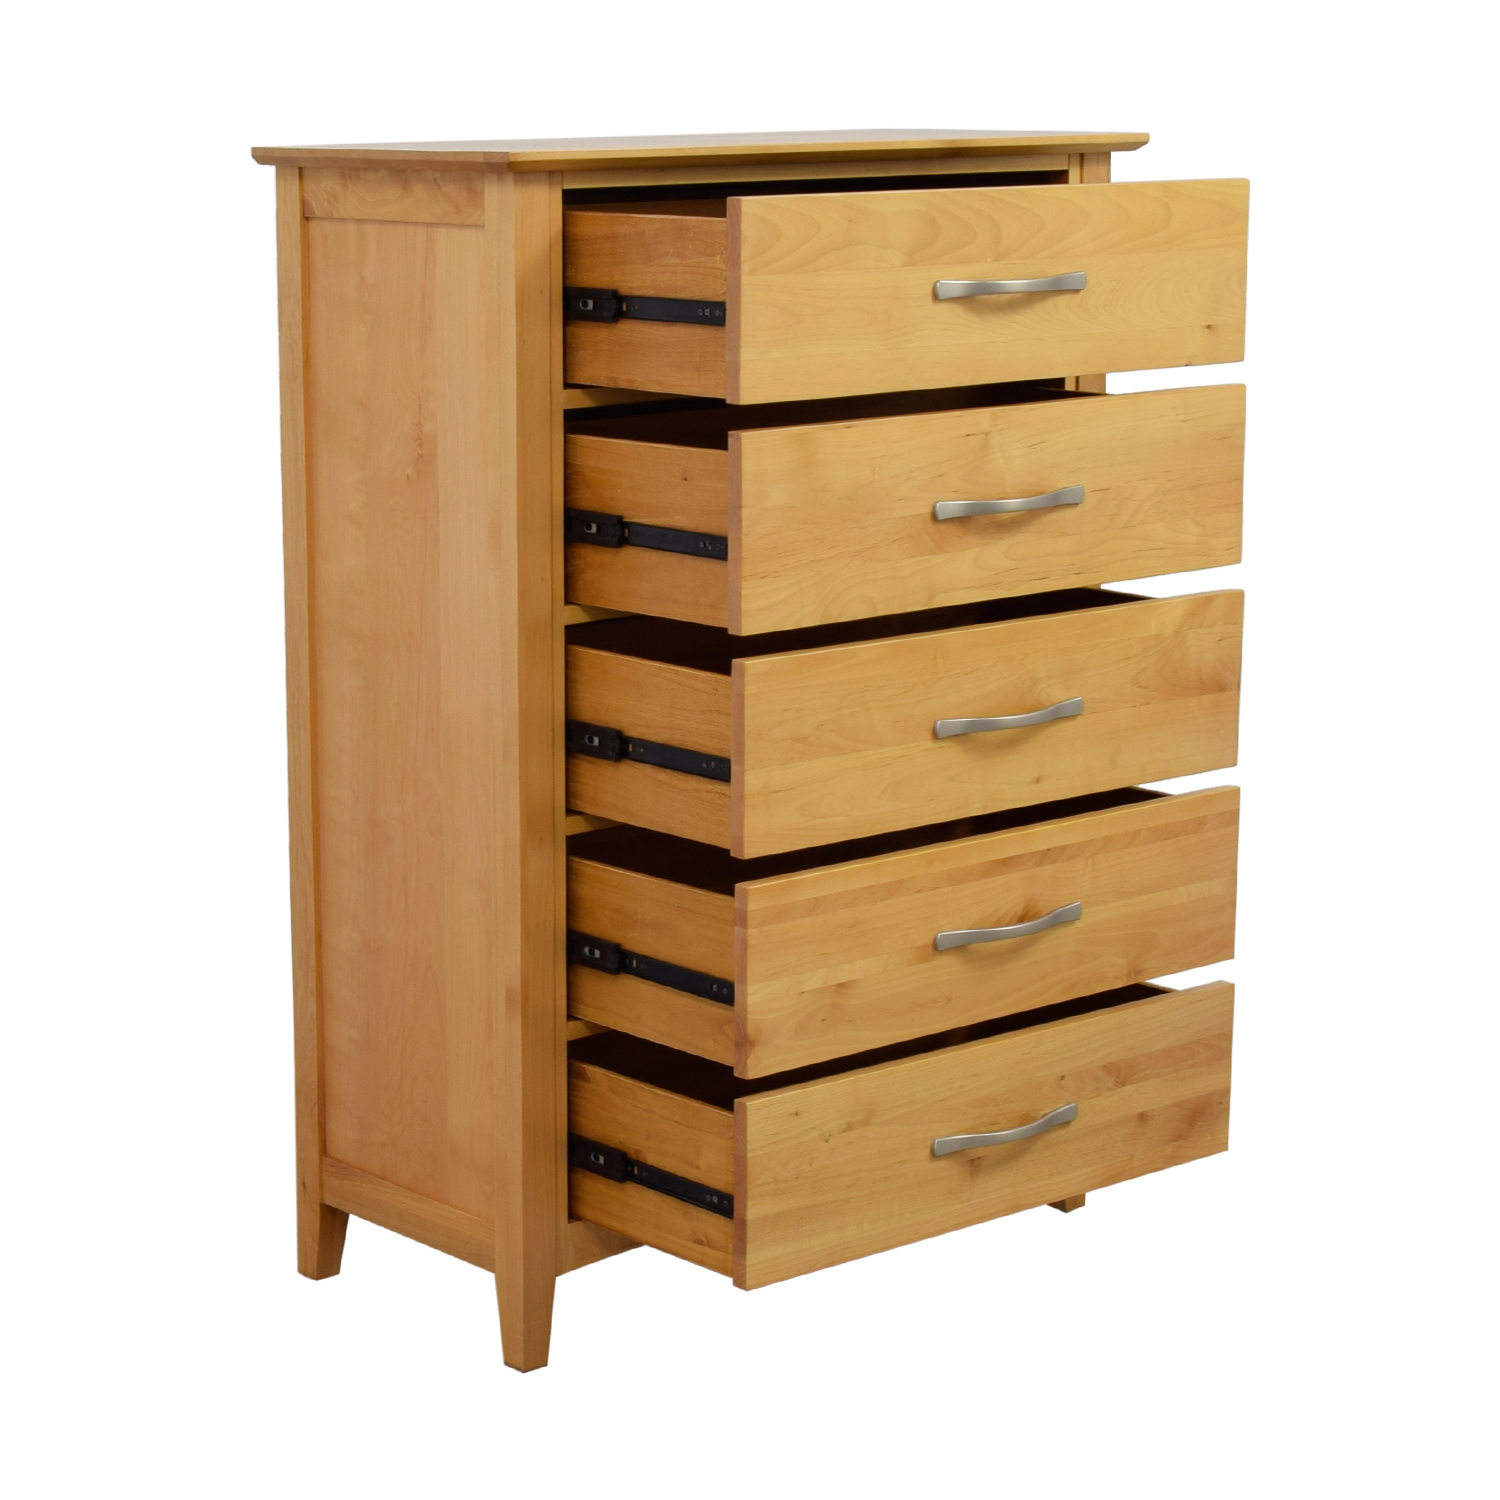 56 off raymour flanigan raymour flanigan everitt five drawer chest of drawers storage. Black Bedroom Furniture Sets. Home Design Ideas